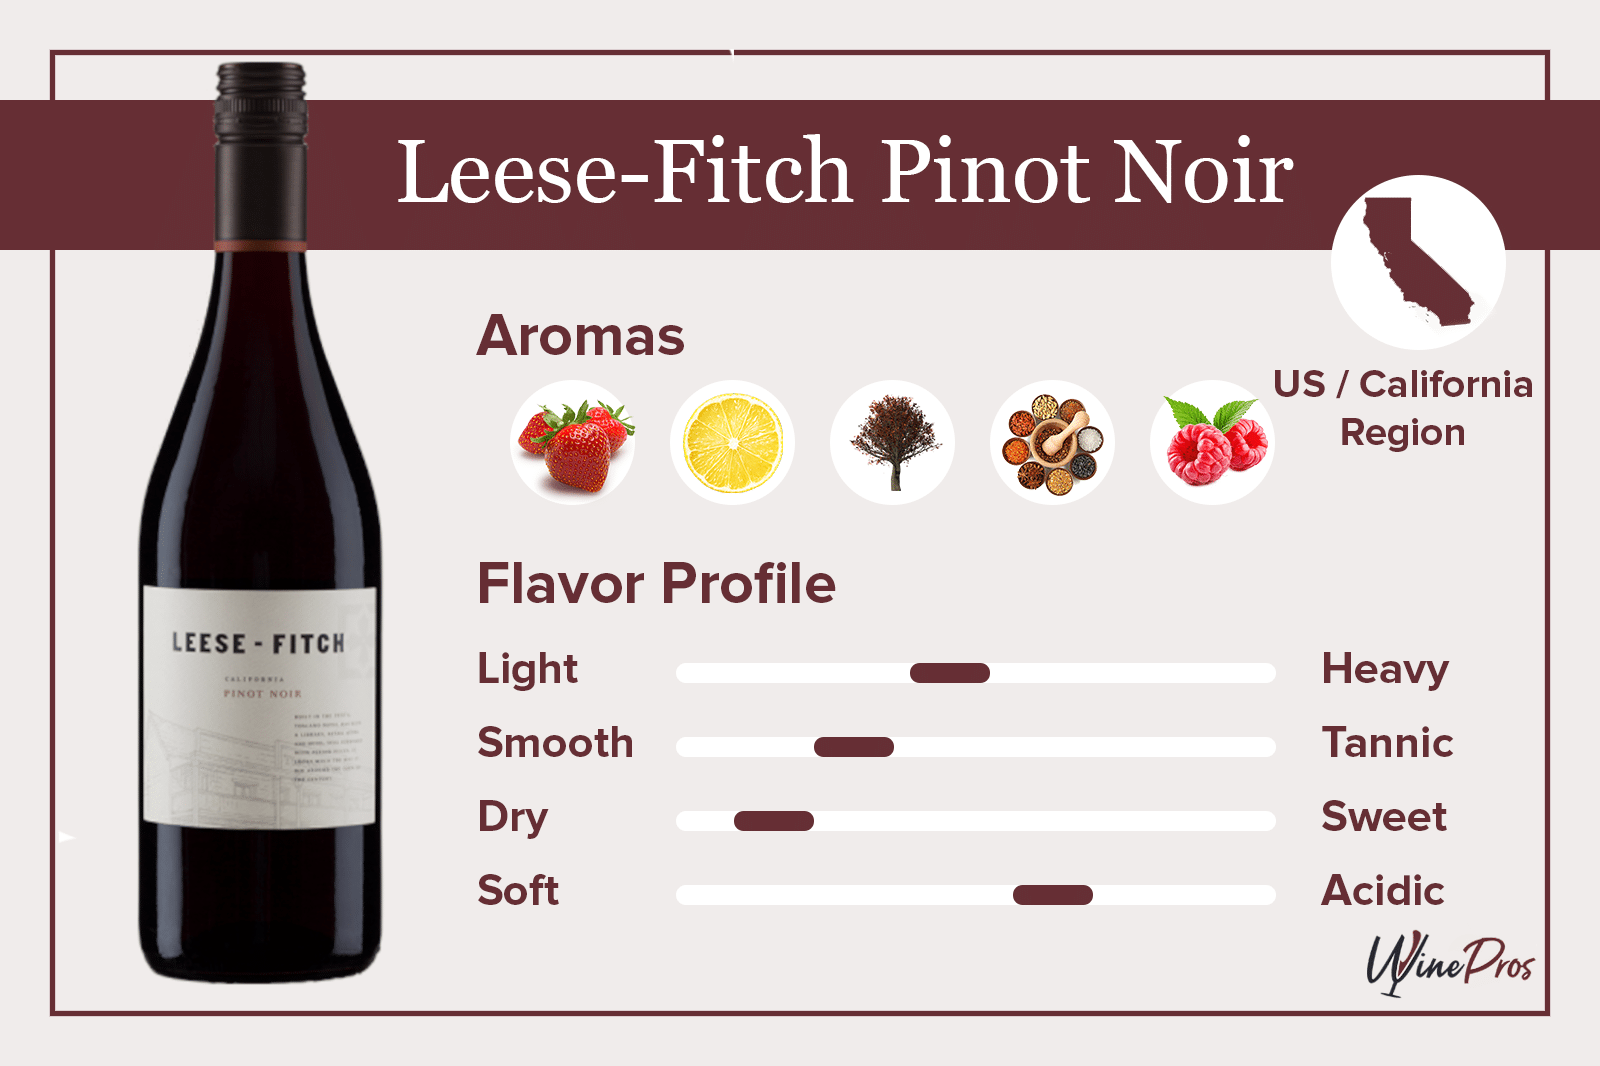 Leese-Fitch Pinot Noir Review (2021)